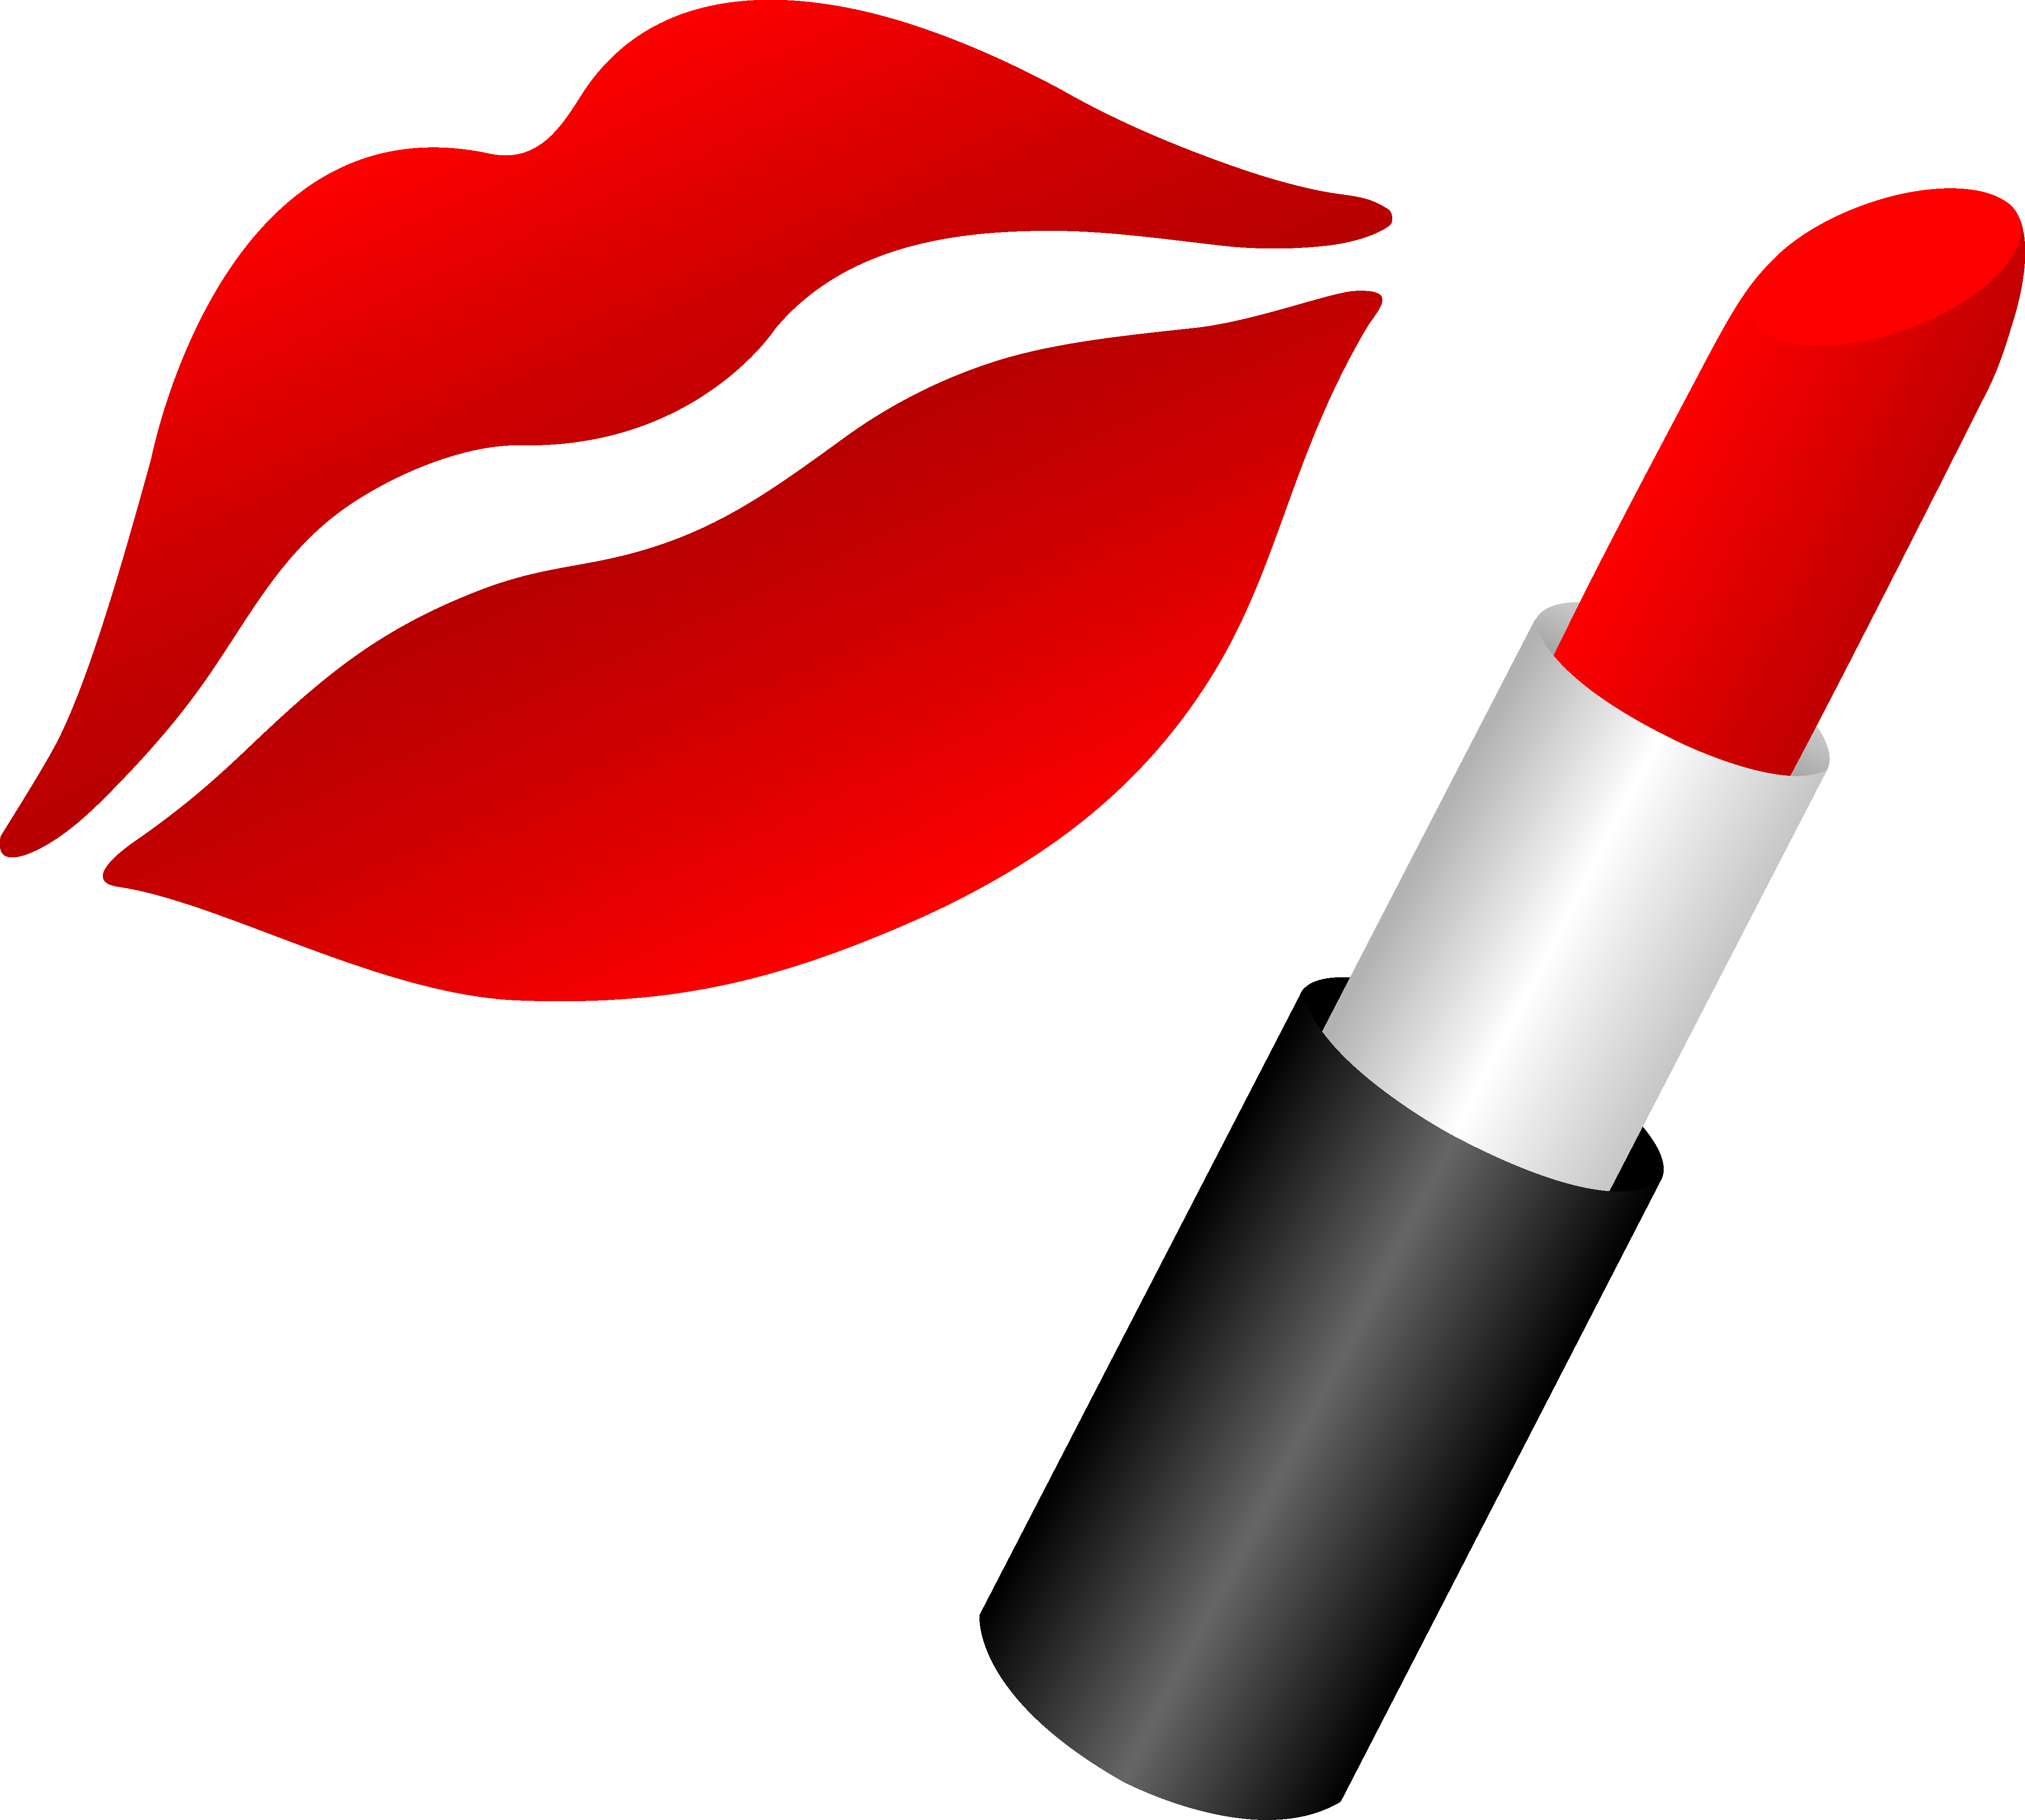 Lips With Red Lipstick - Free Clip Art | Red Lips | Pinterest | It is, Makeup and The ou0026#39;jays